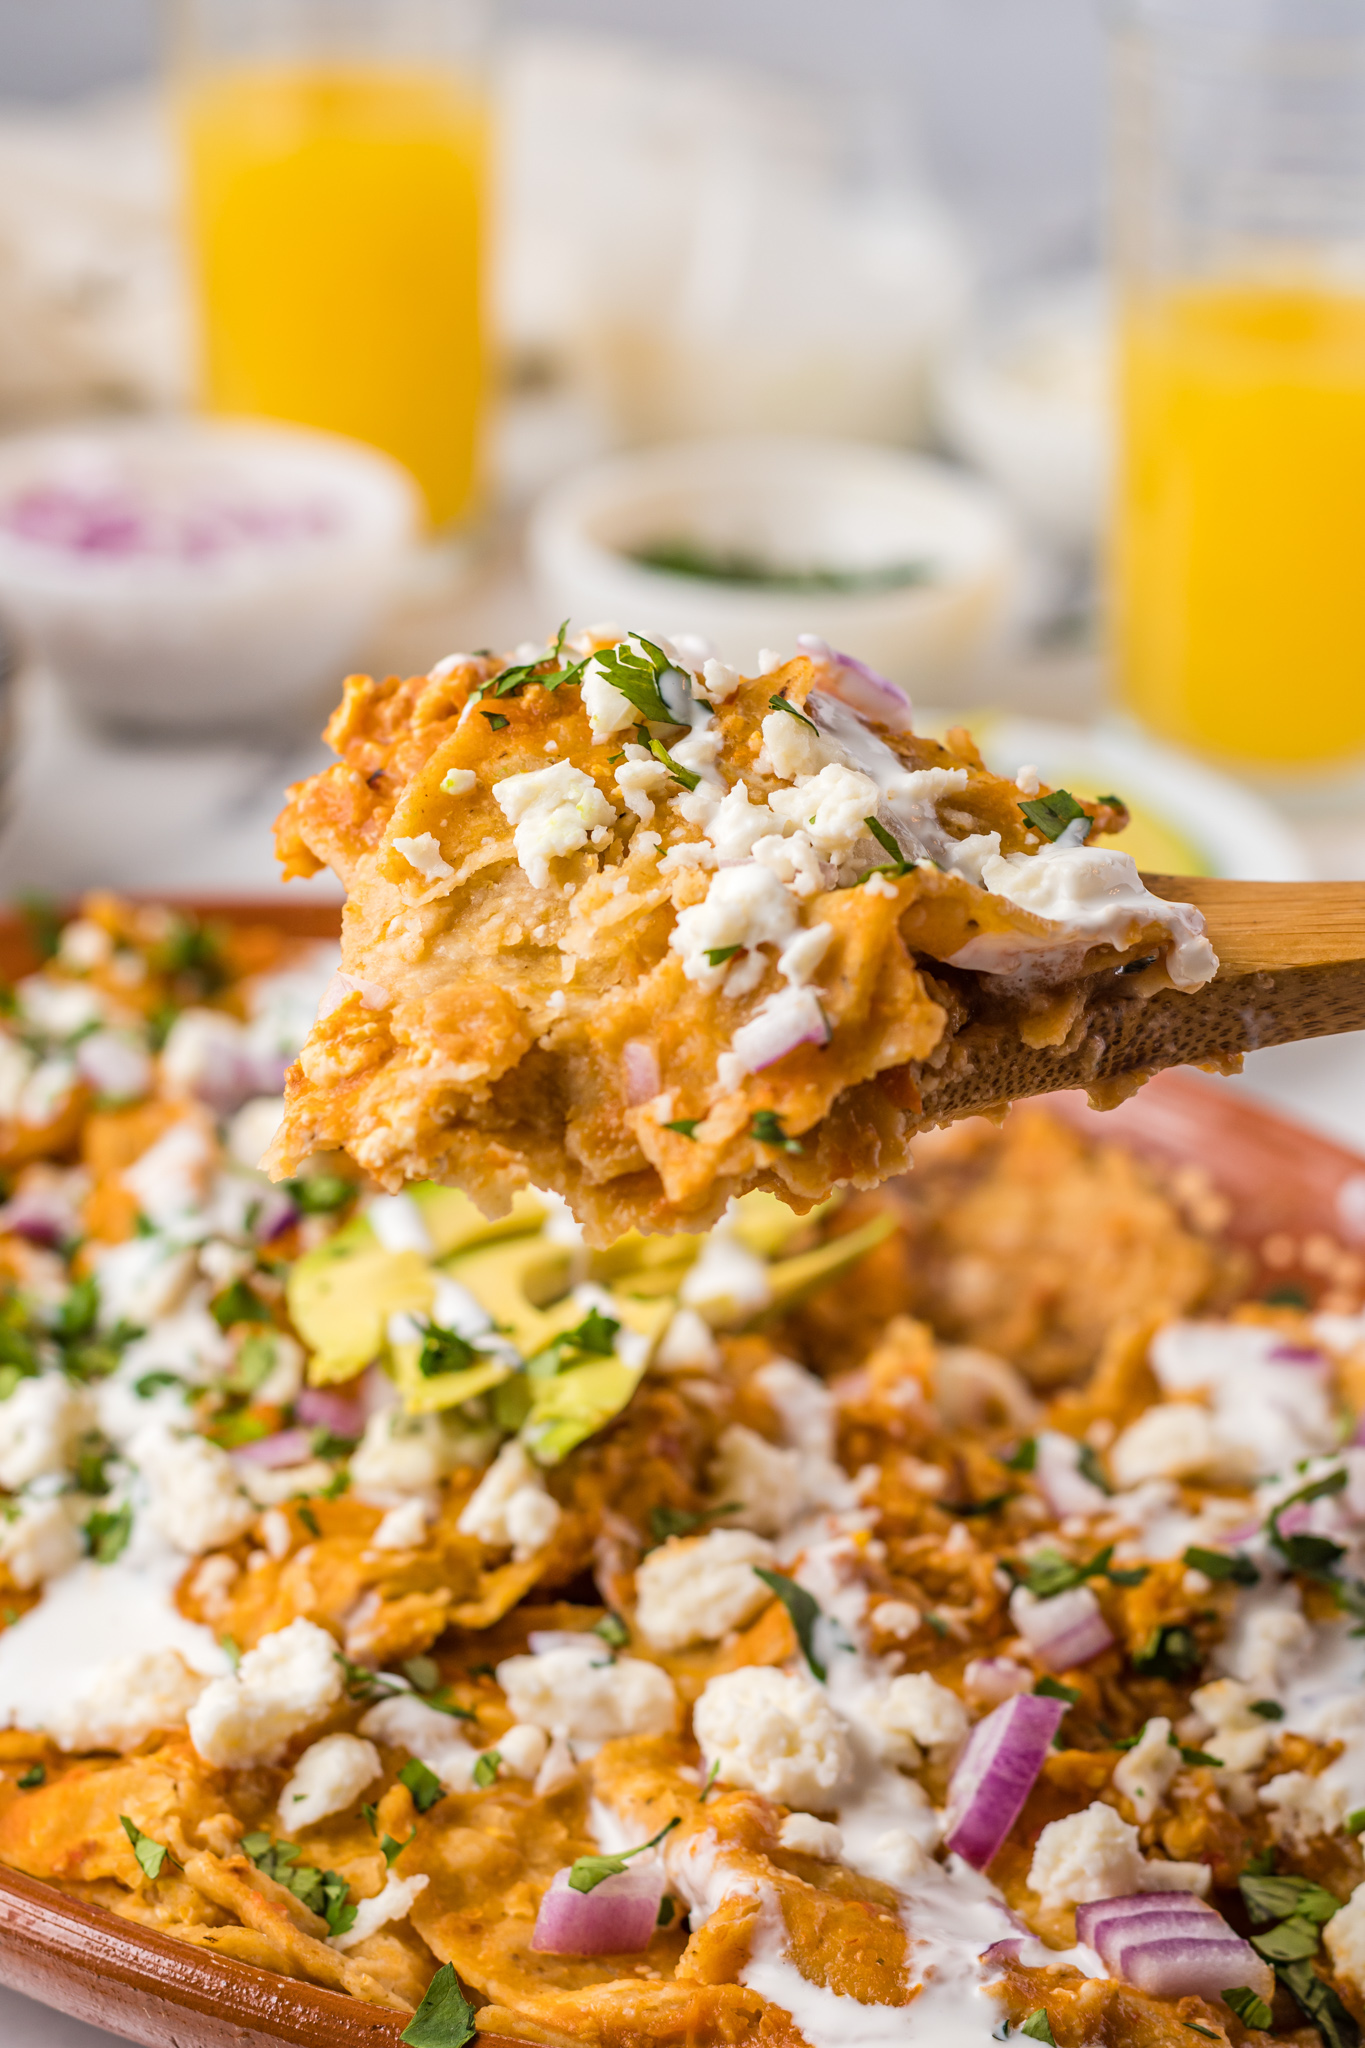 Chilaquiles Rojos Recipe with a wooden spoon holding the chilaquiles.